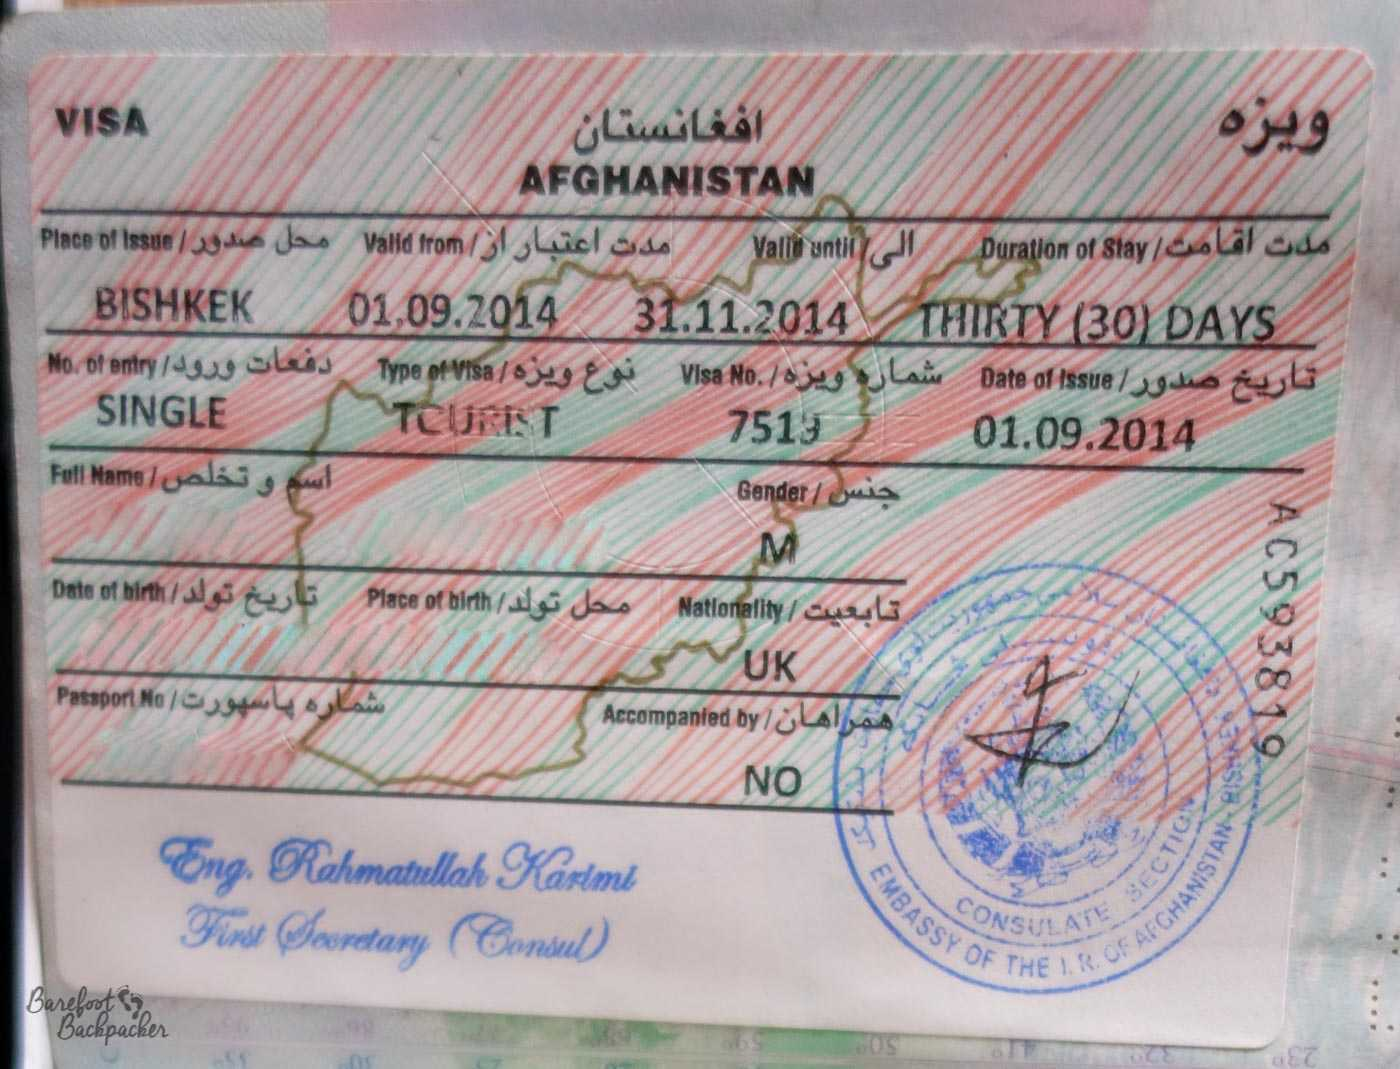 A copy of my visa for Afghanistan. All my personal details are blanked out, but it tells you it was issued in Bishkek, valid for a single entry, and allows up to thirty day stay in the three months from 1 September 2014. And that I'm an unaccompanied Brit.